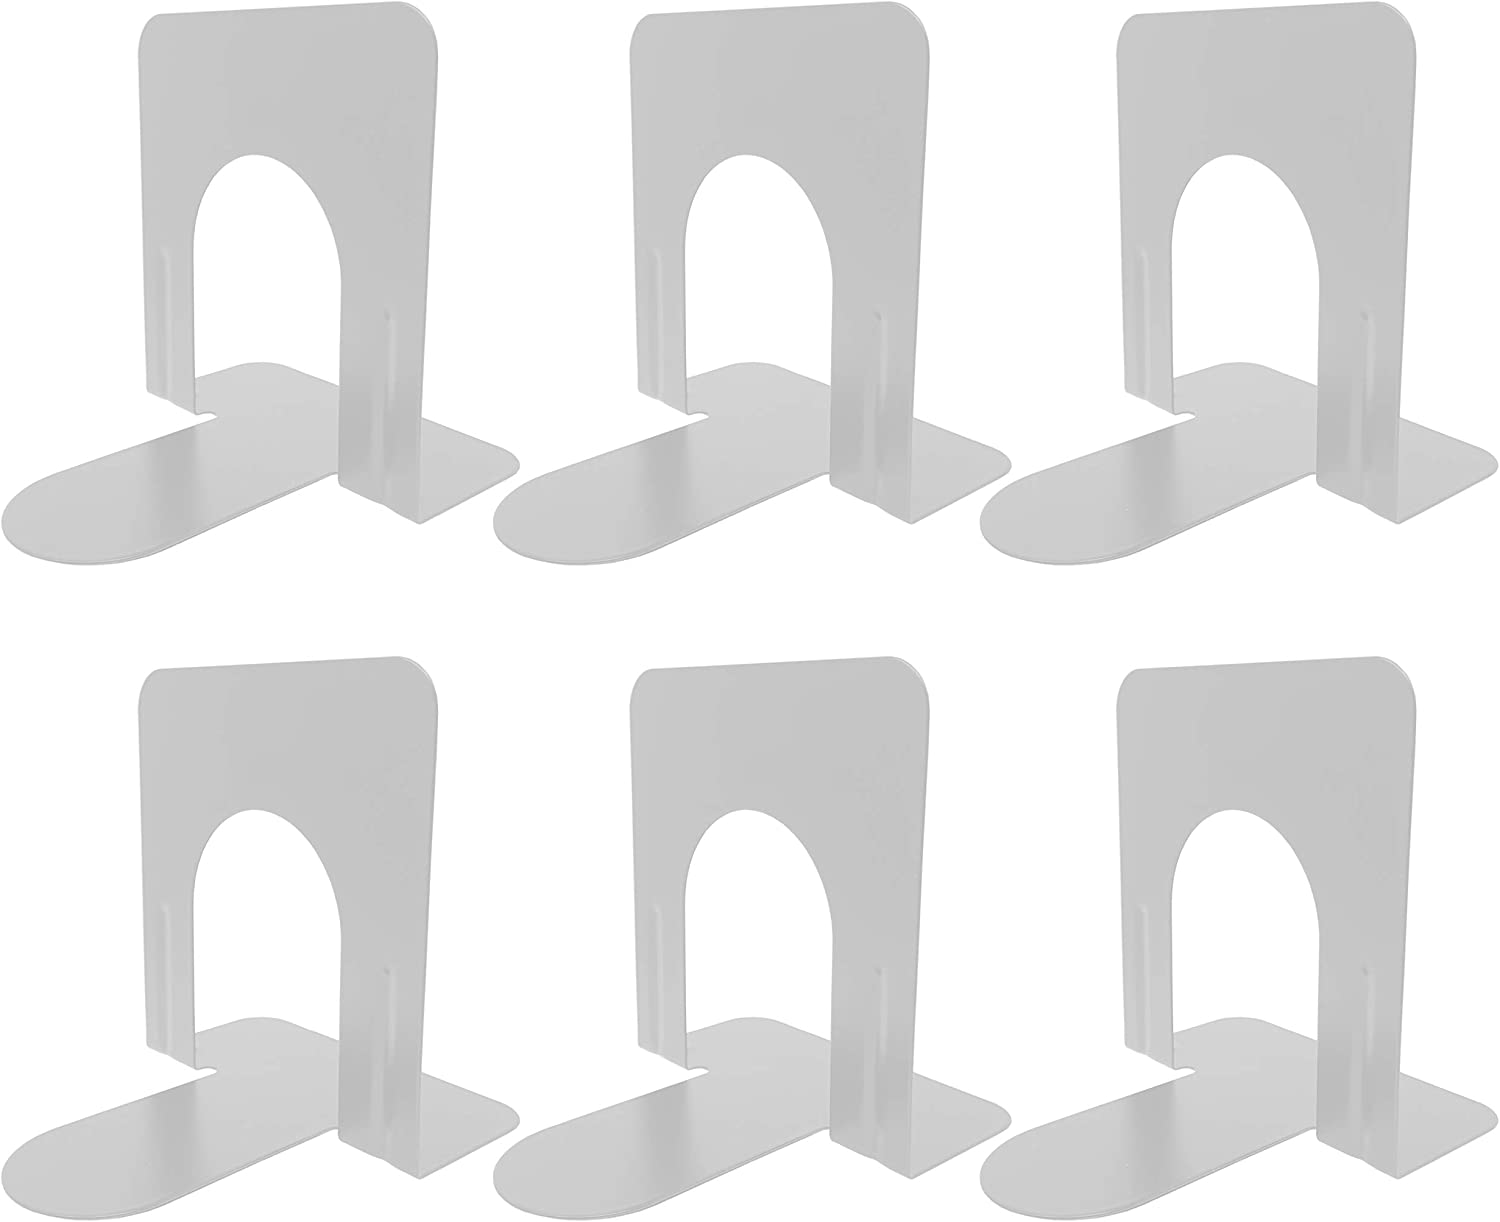 Clipco Premium Book Ends with Anti-Slip Pad 6 Pack New Shipping Free Shipping 5-inch Max 88% OFF of